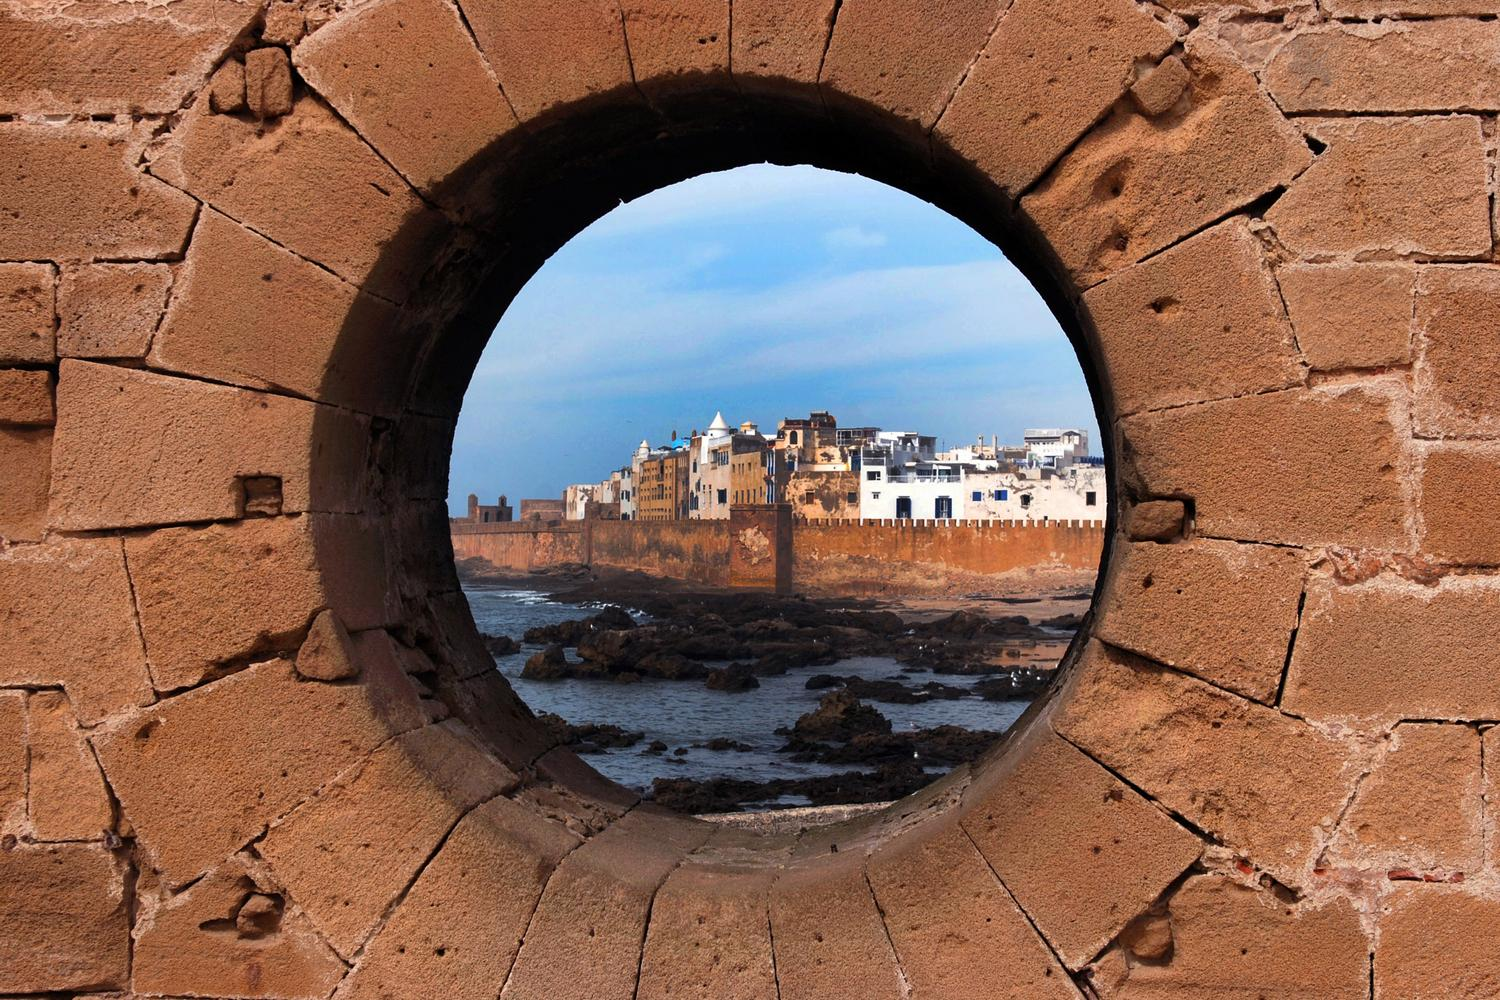 View through the looking hole of Essaouira